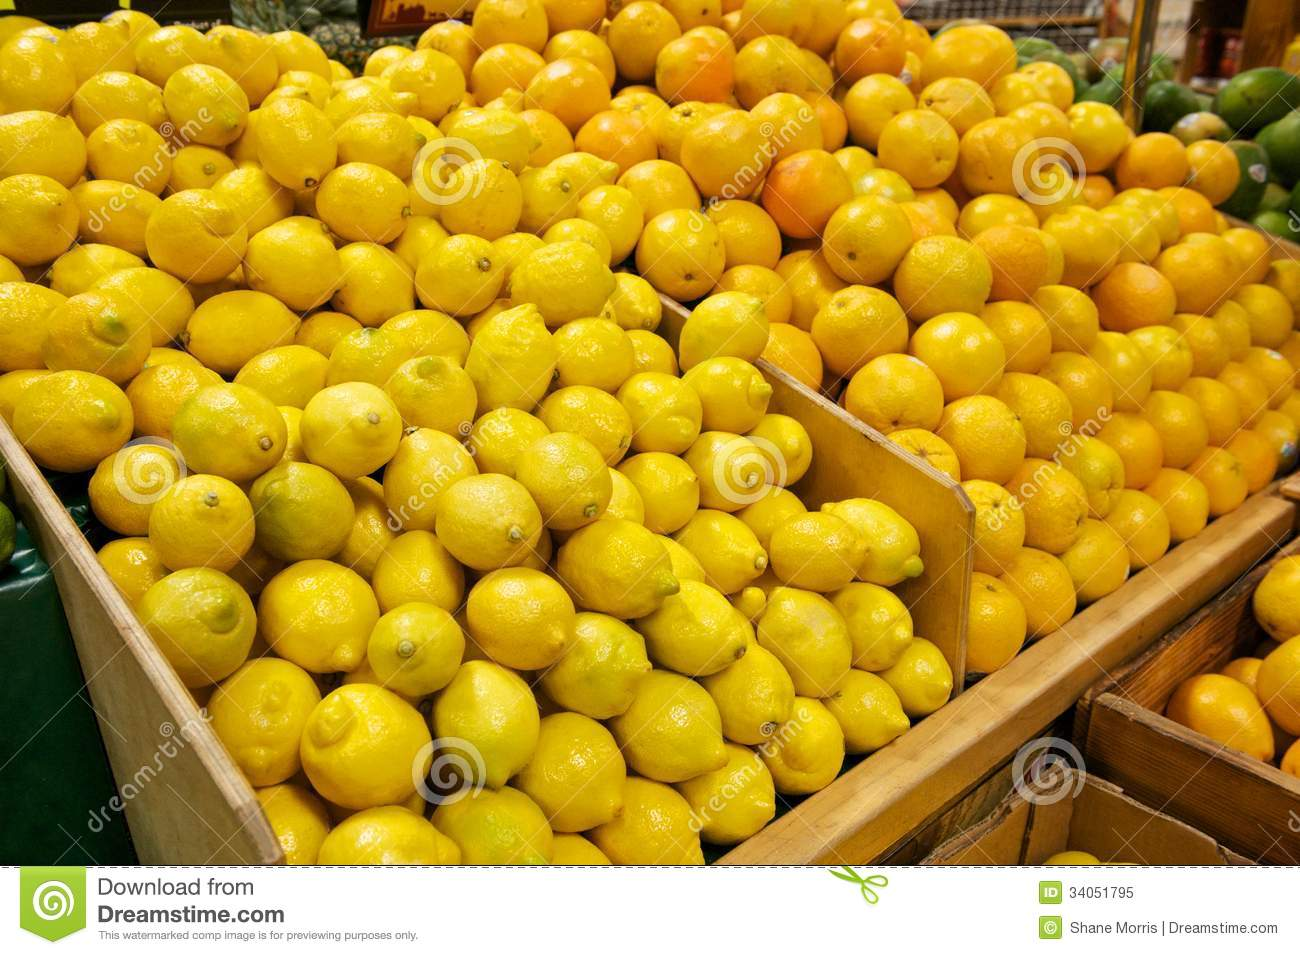 Fruit Bins For Sale Wooden Bins Filled With Fresh Lemons And Oranges Stock